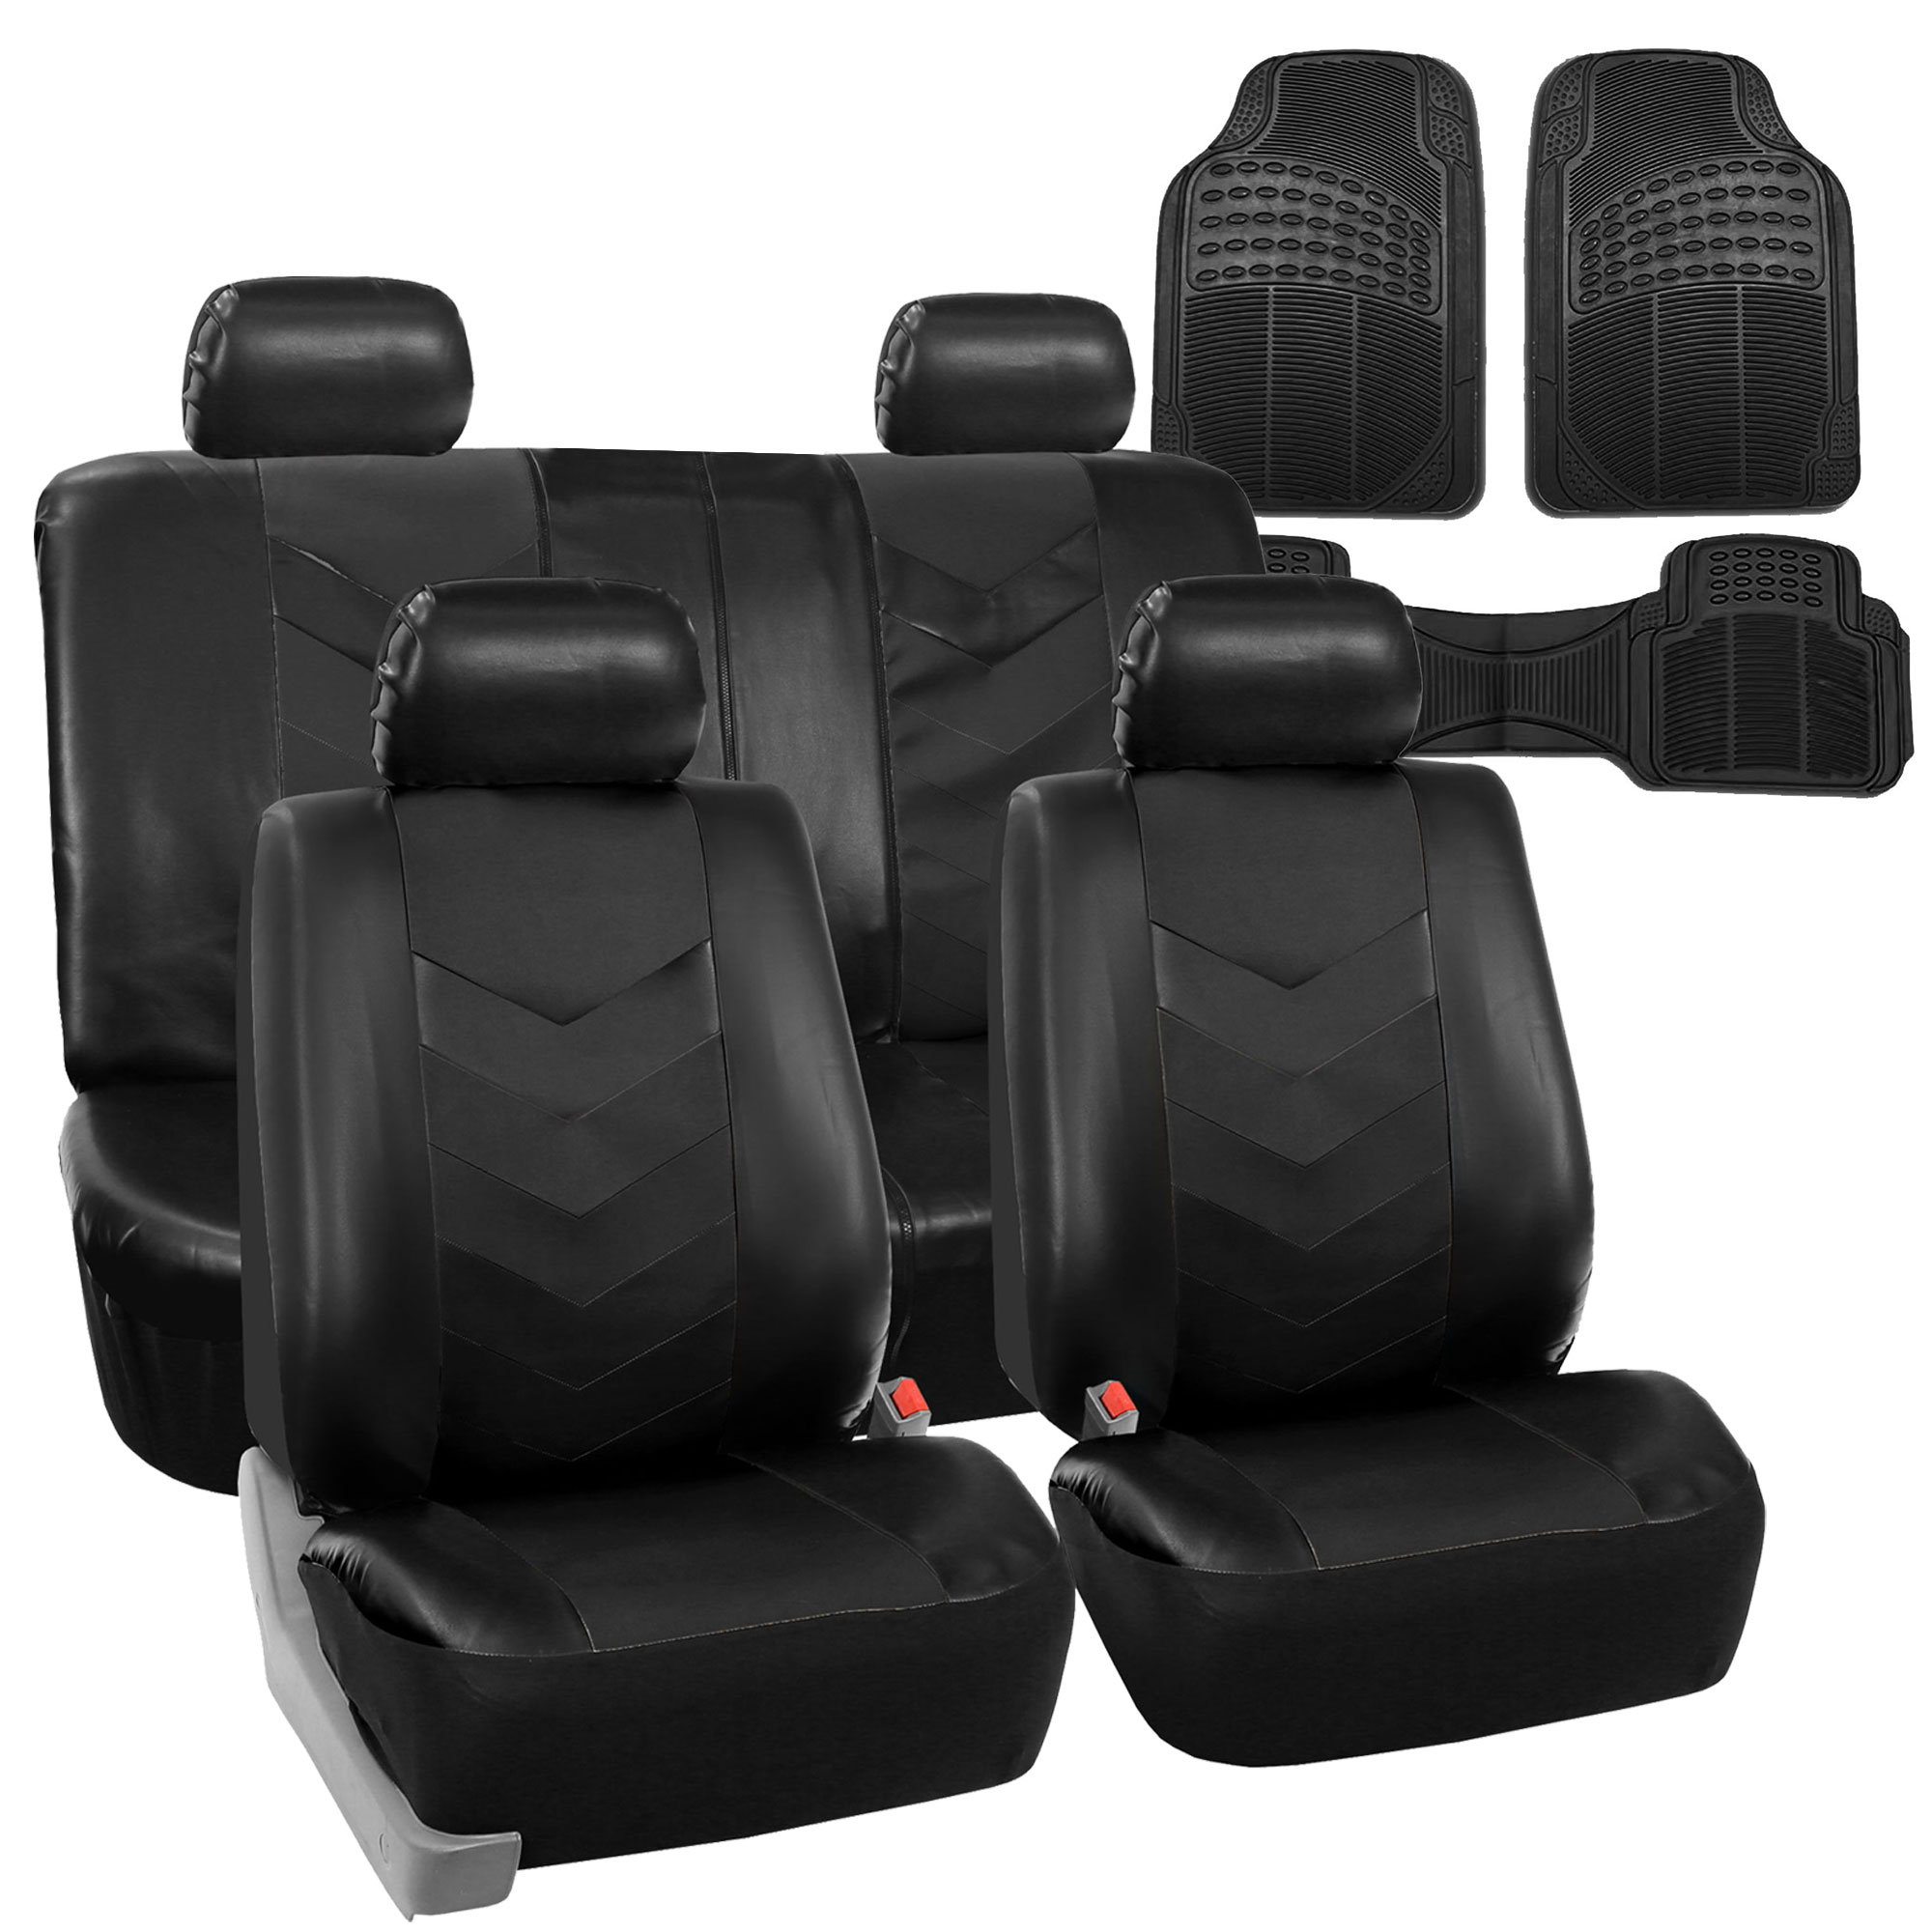 Faux Leather Car Seat Covers For Car Black W/ Heavy Duty